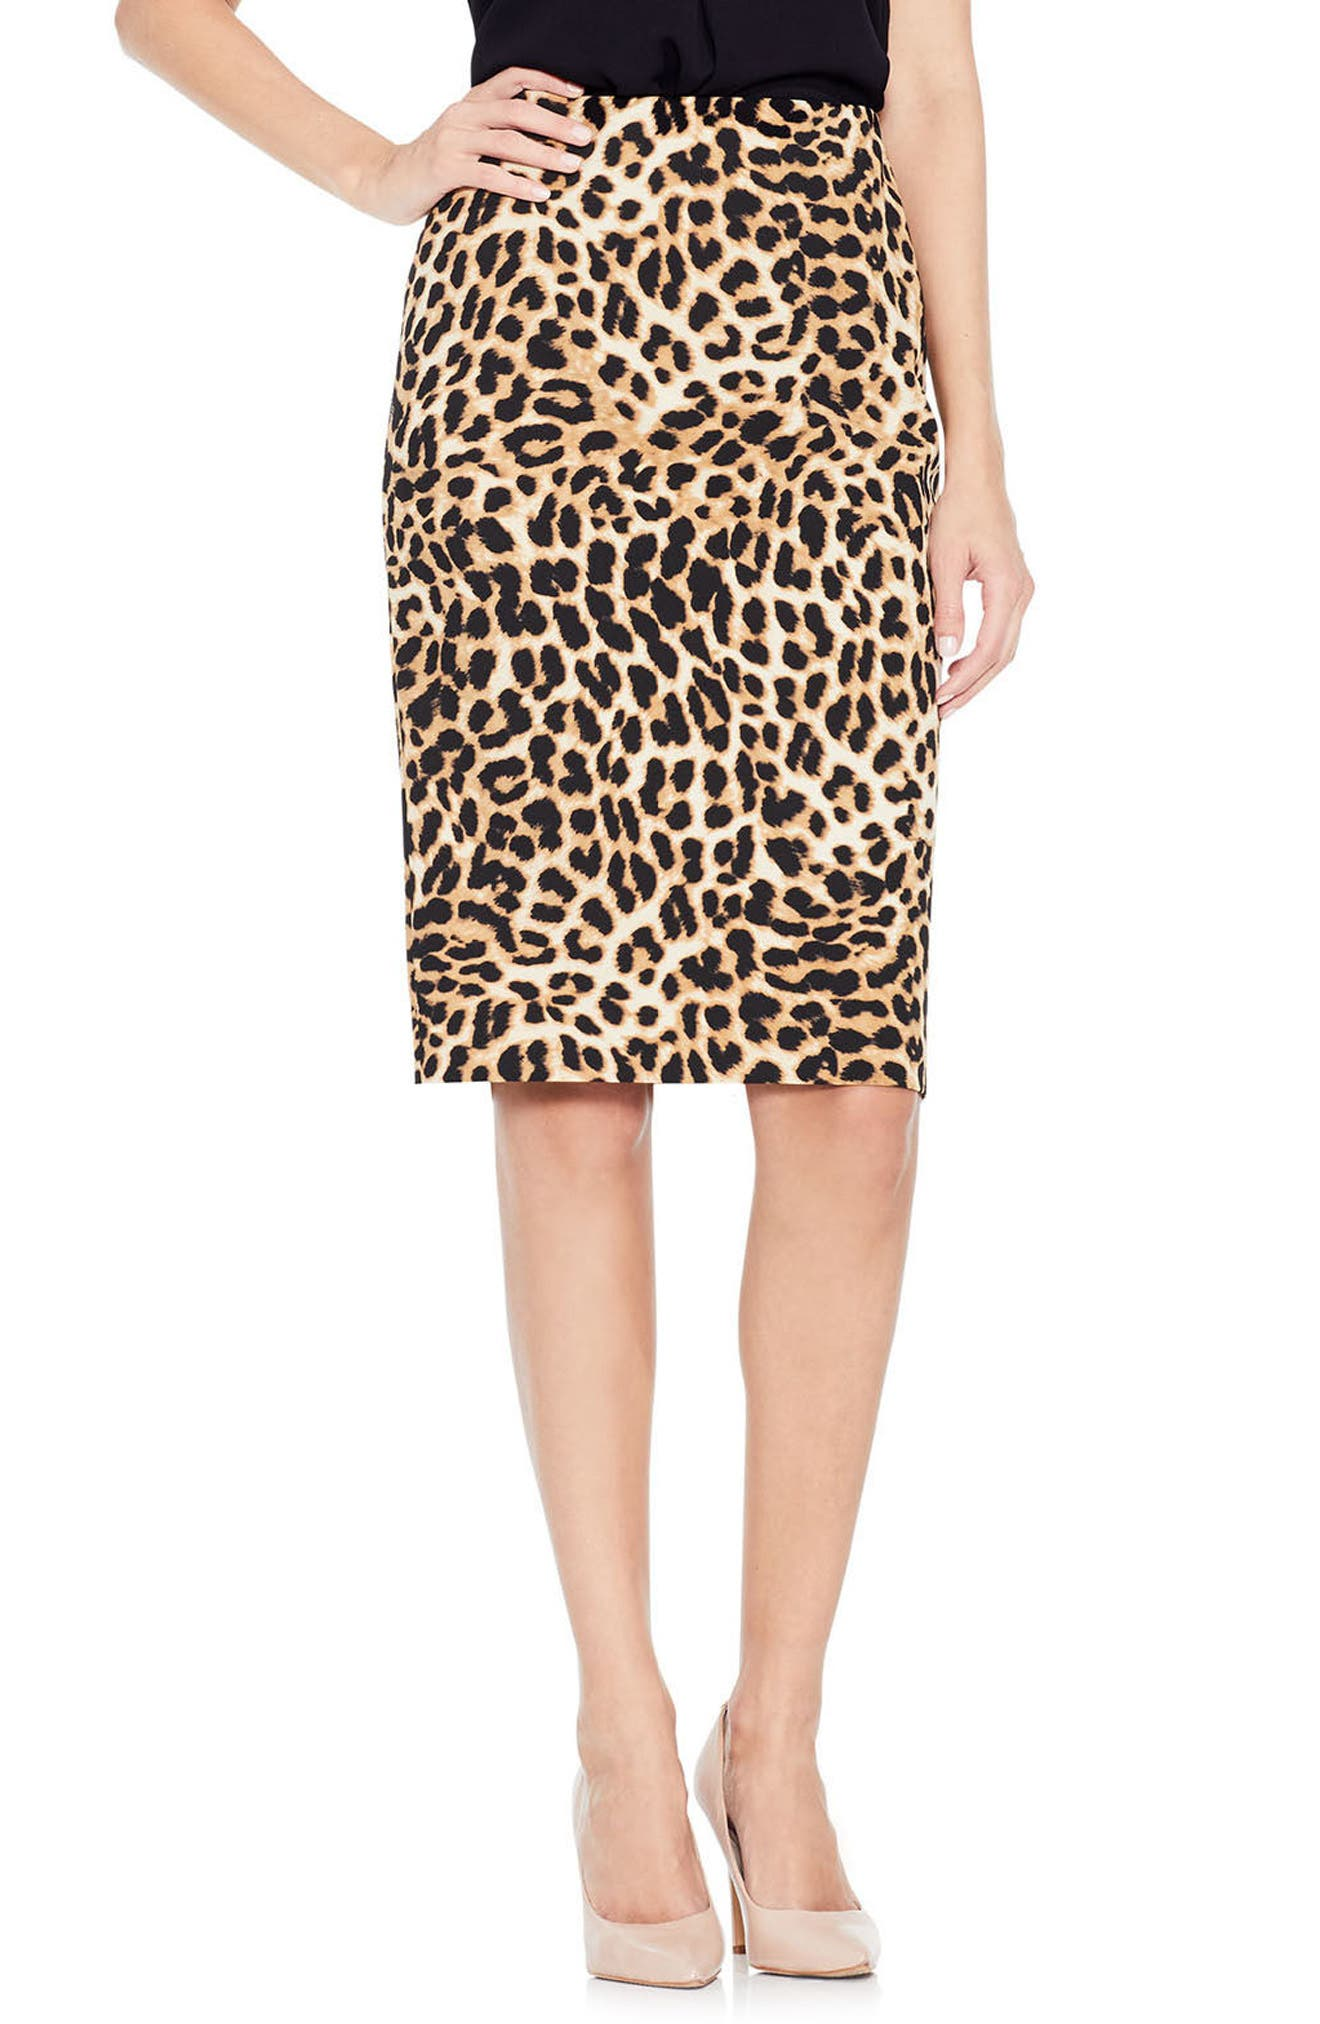 Animal Print Pencil Skirt,                             Main thumbnail 1, color,                             006